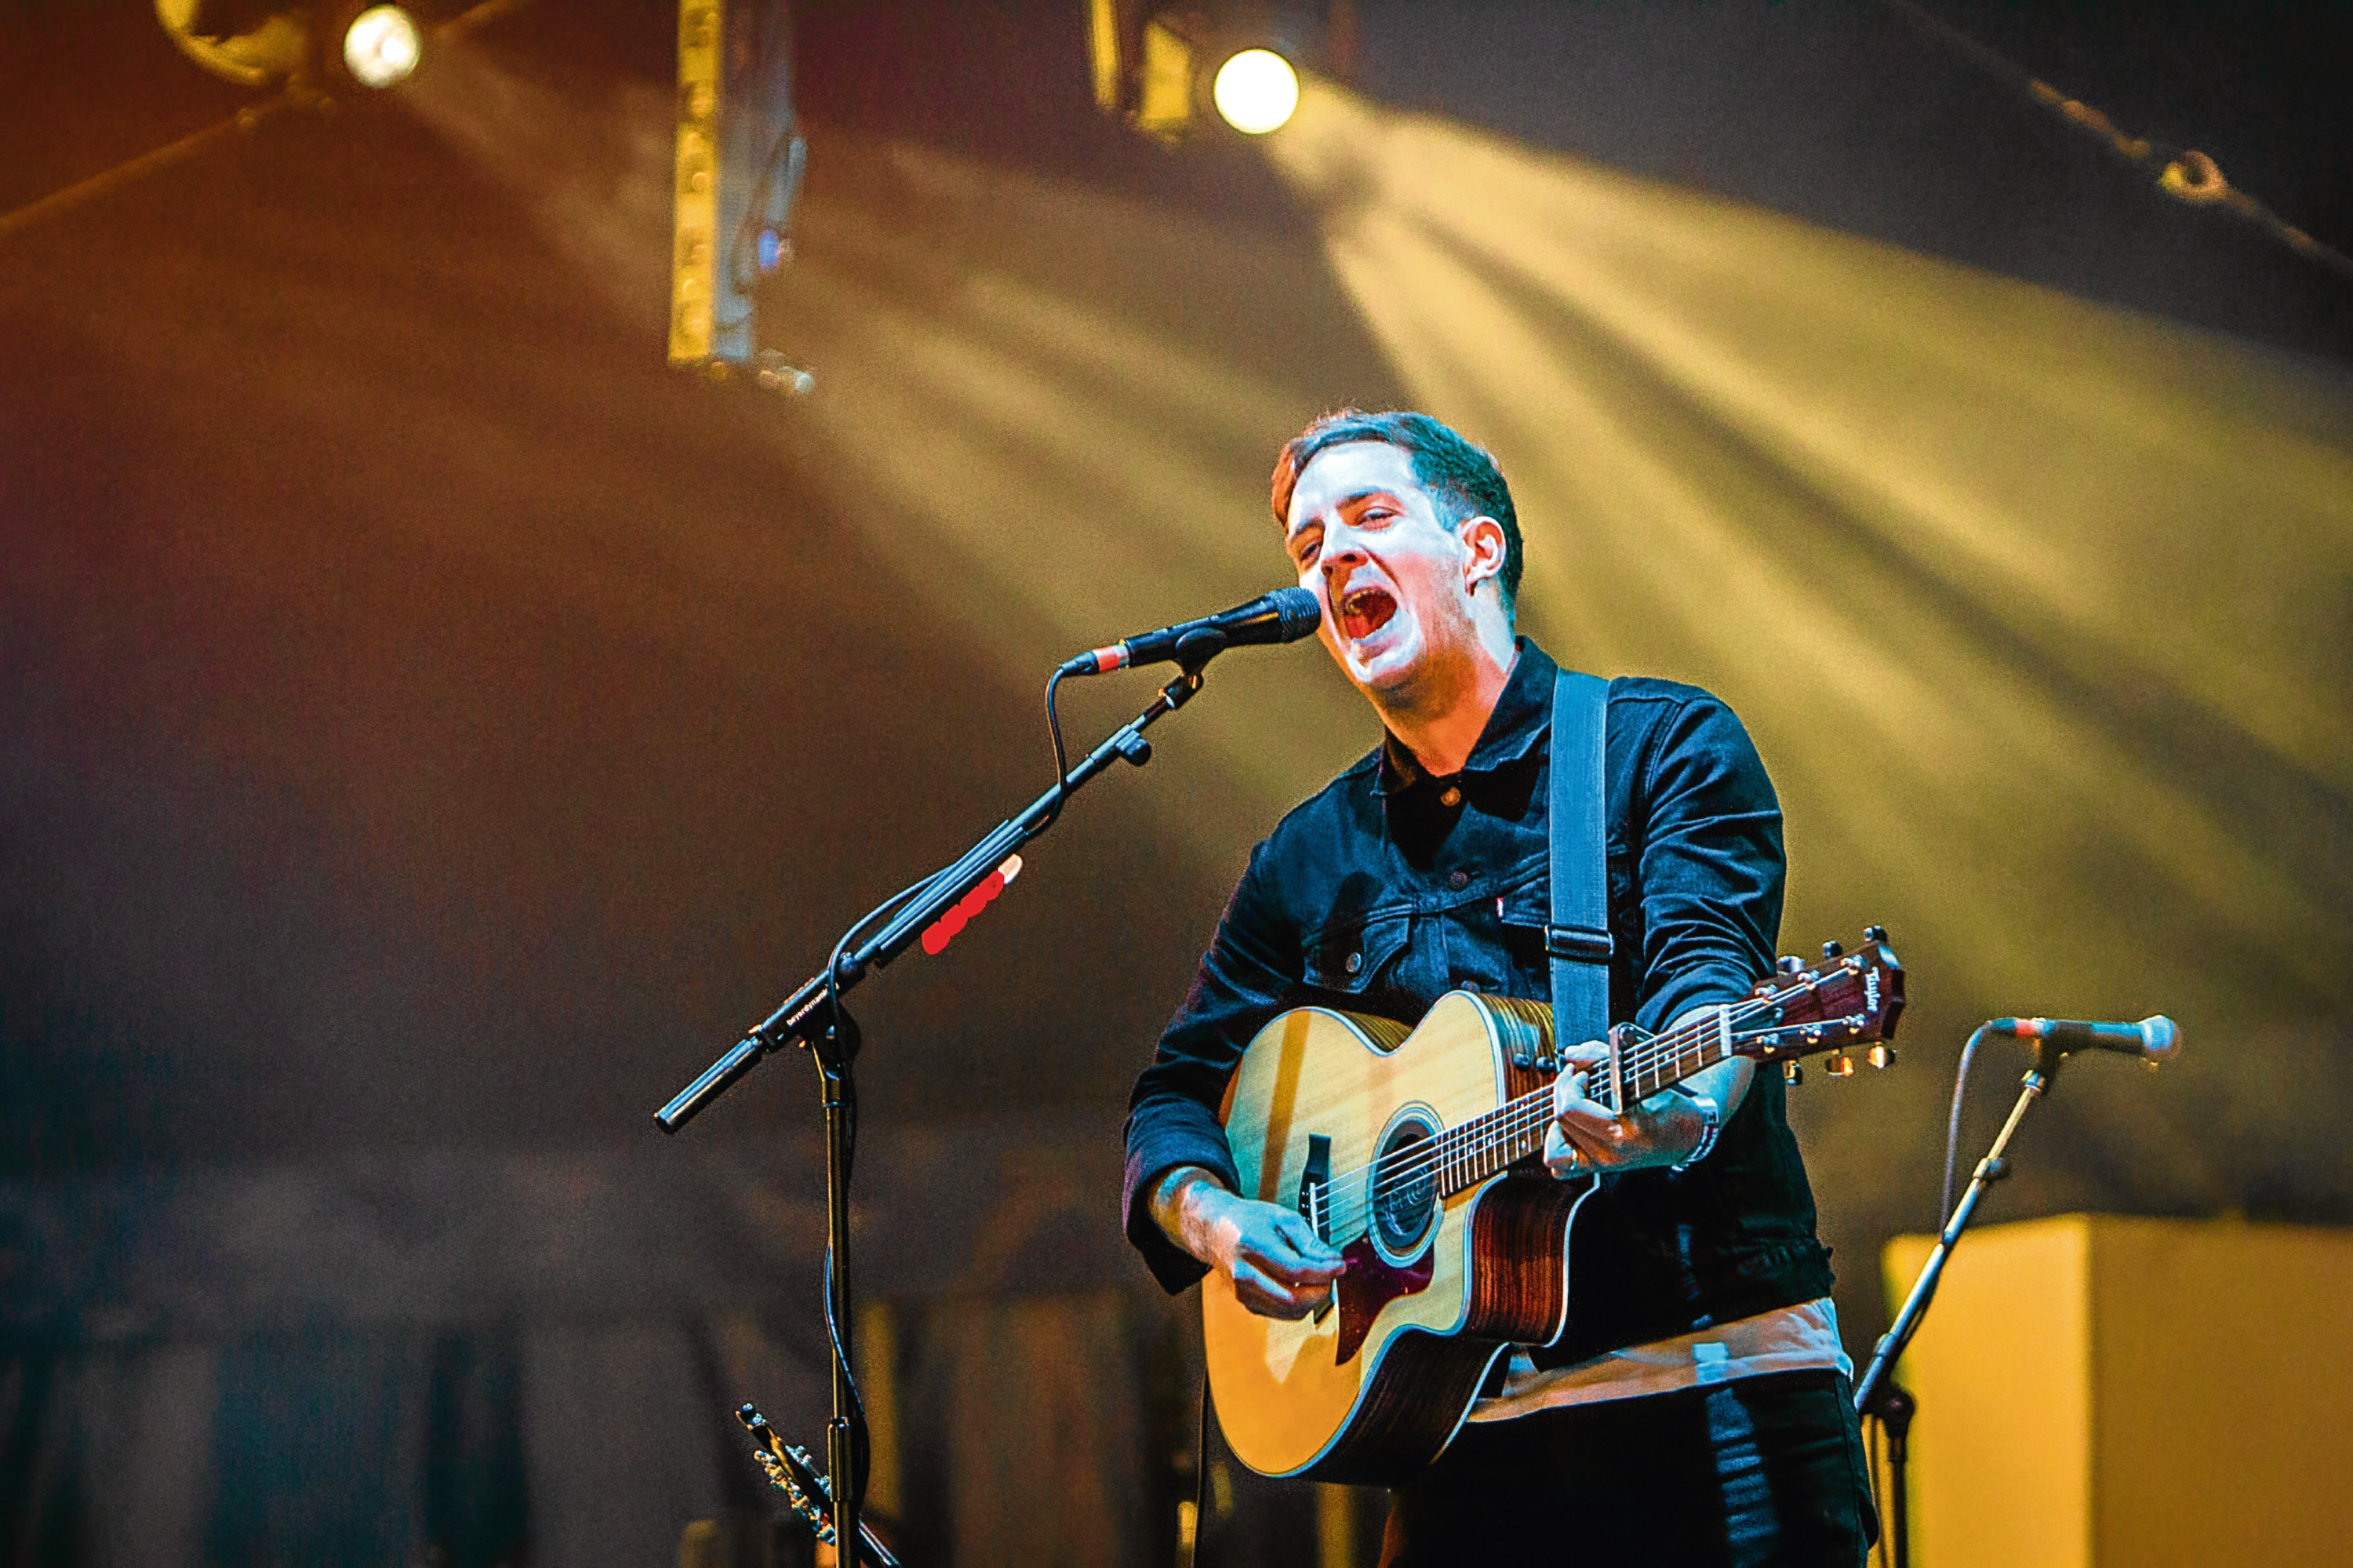 Stevie McCrorie performing at T in the Park